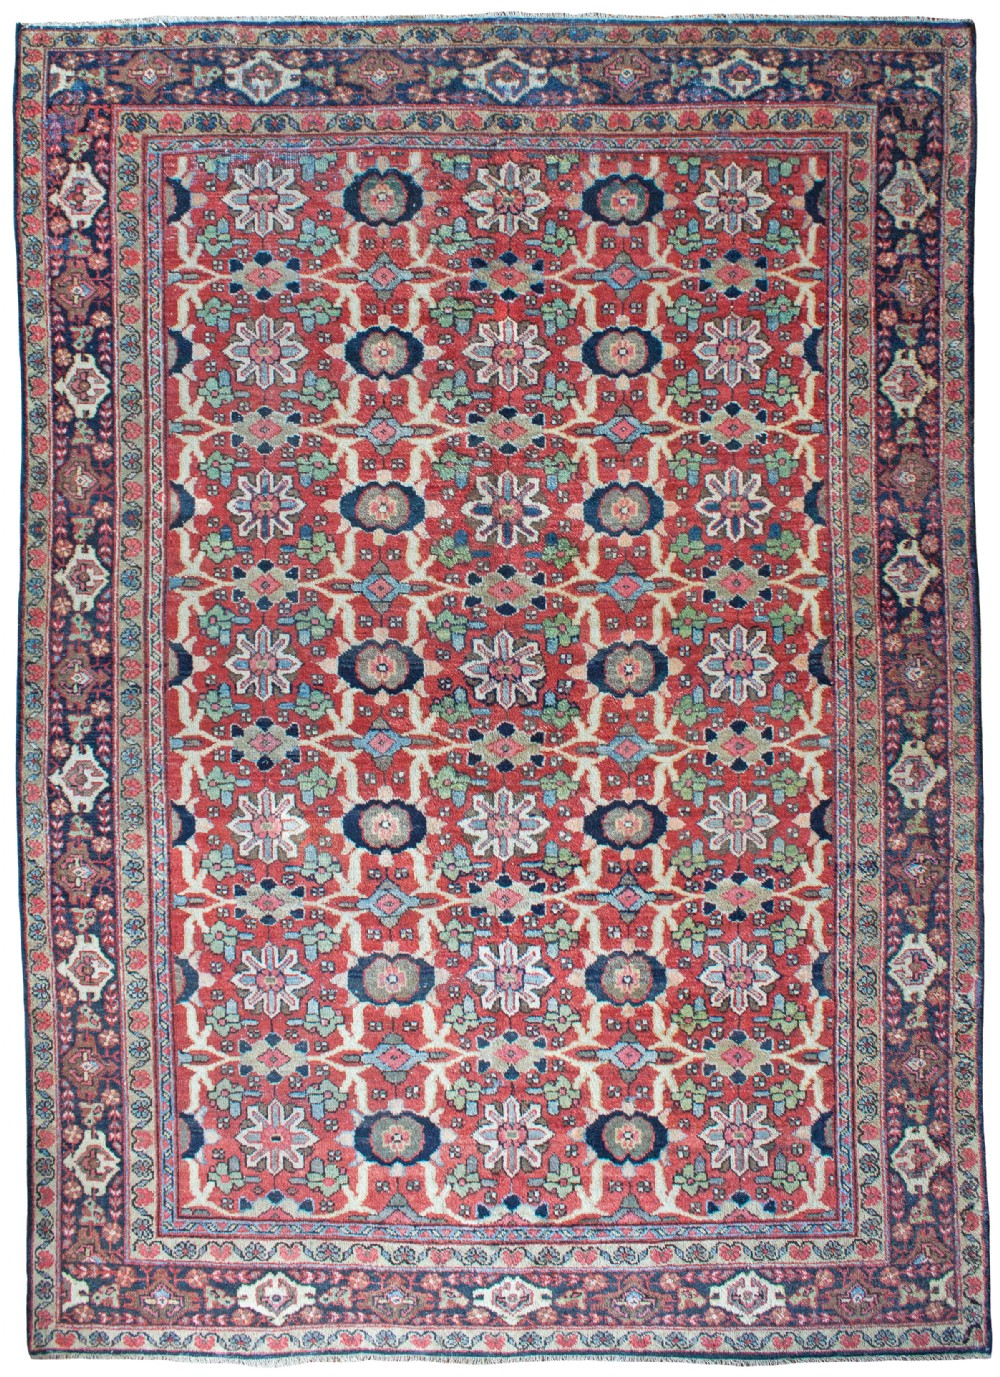 antique mahal carpet persian slightly distressed in places